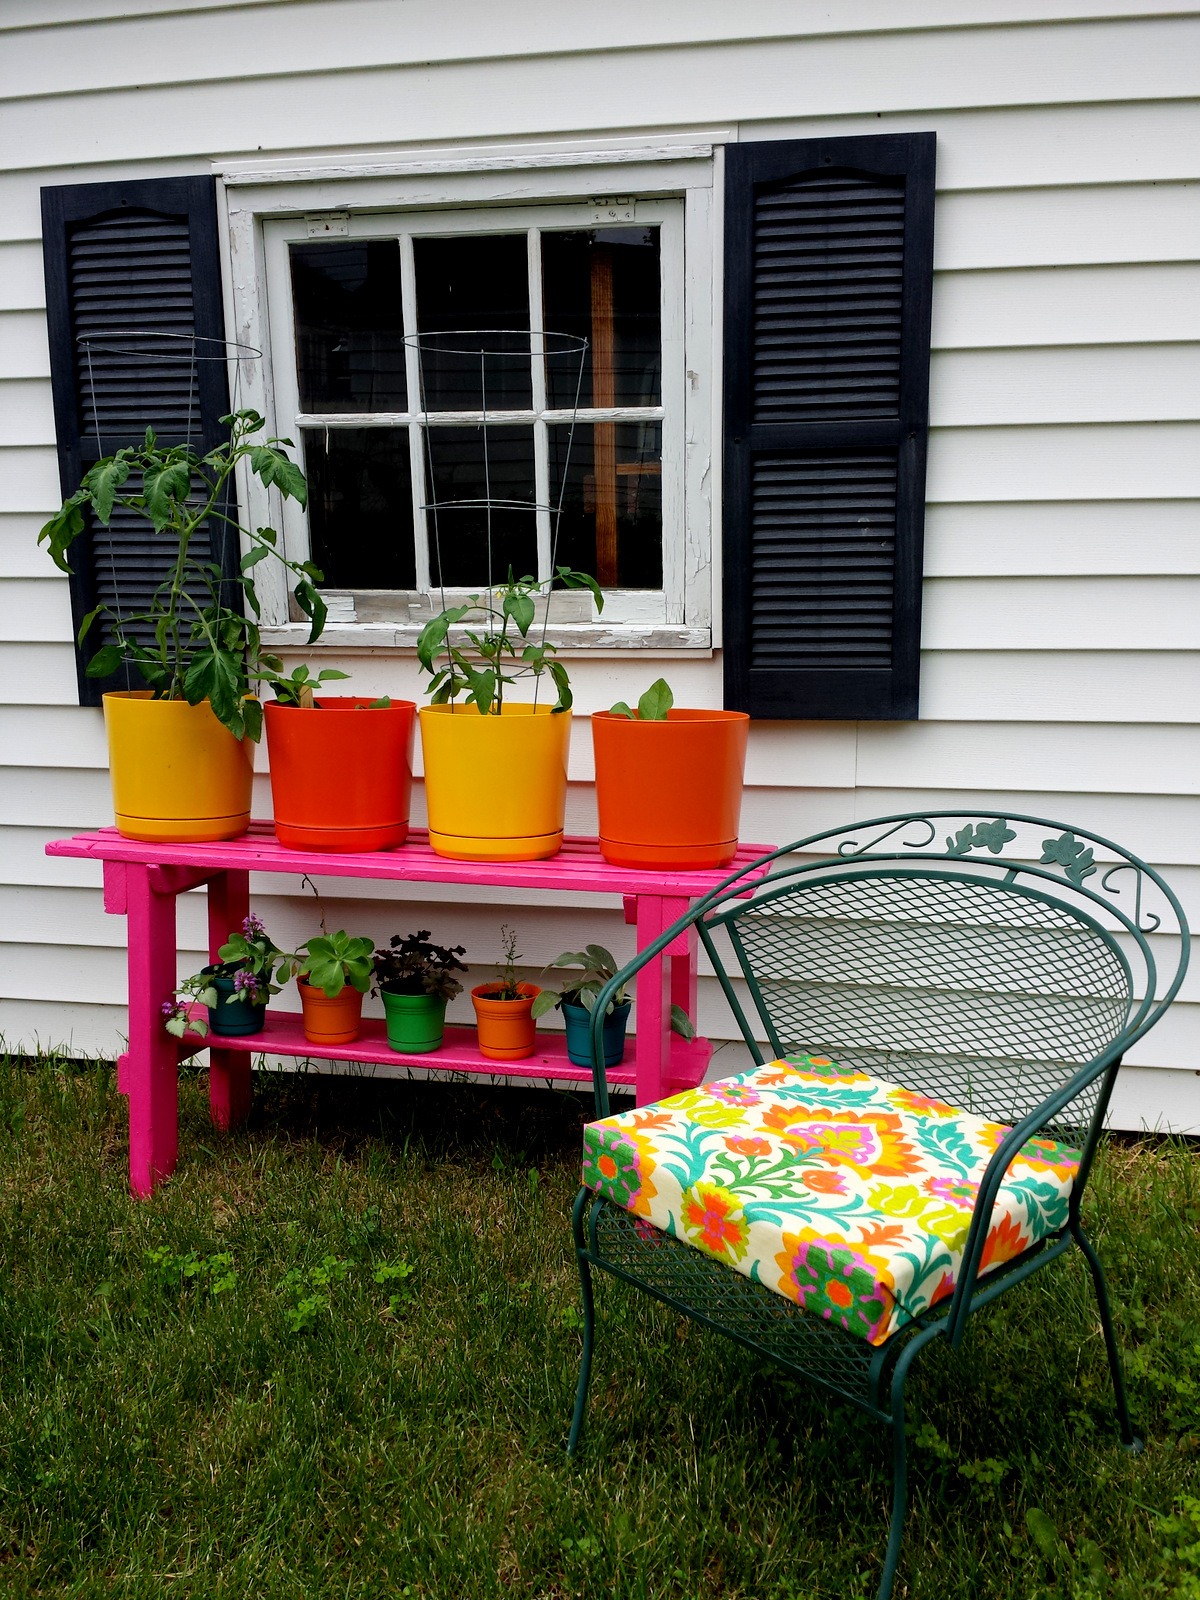 sewing patterns for patio chair cushions ergonomic reviews reddit diy no sew seat come along with chong